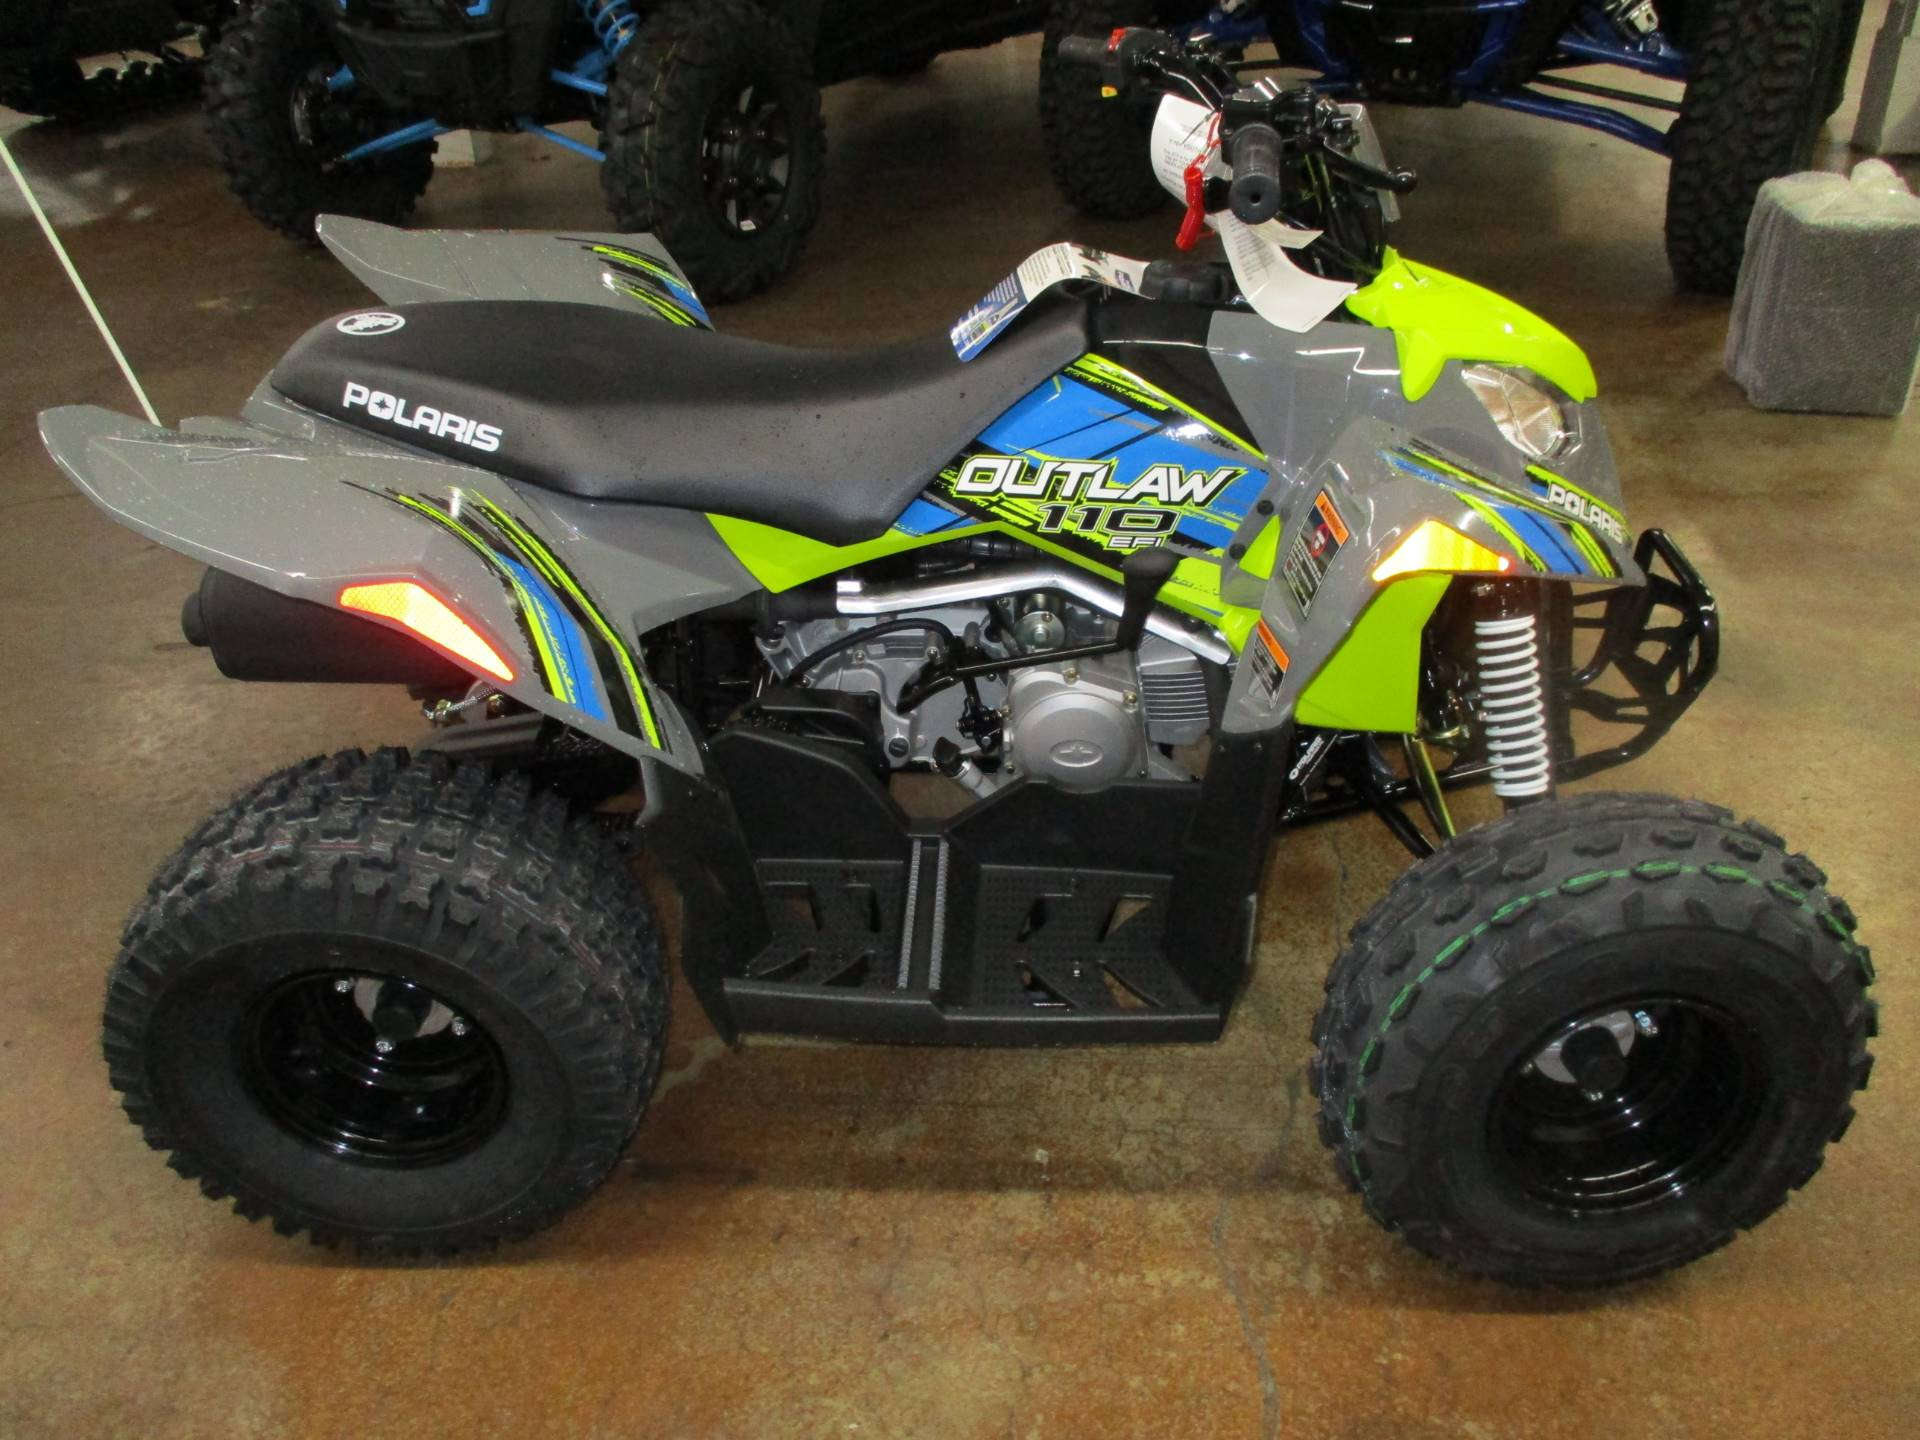 2019 Polaris Outlaw 110 in Tualatin, Oregon